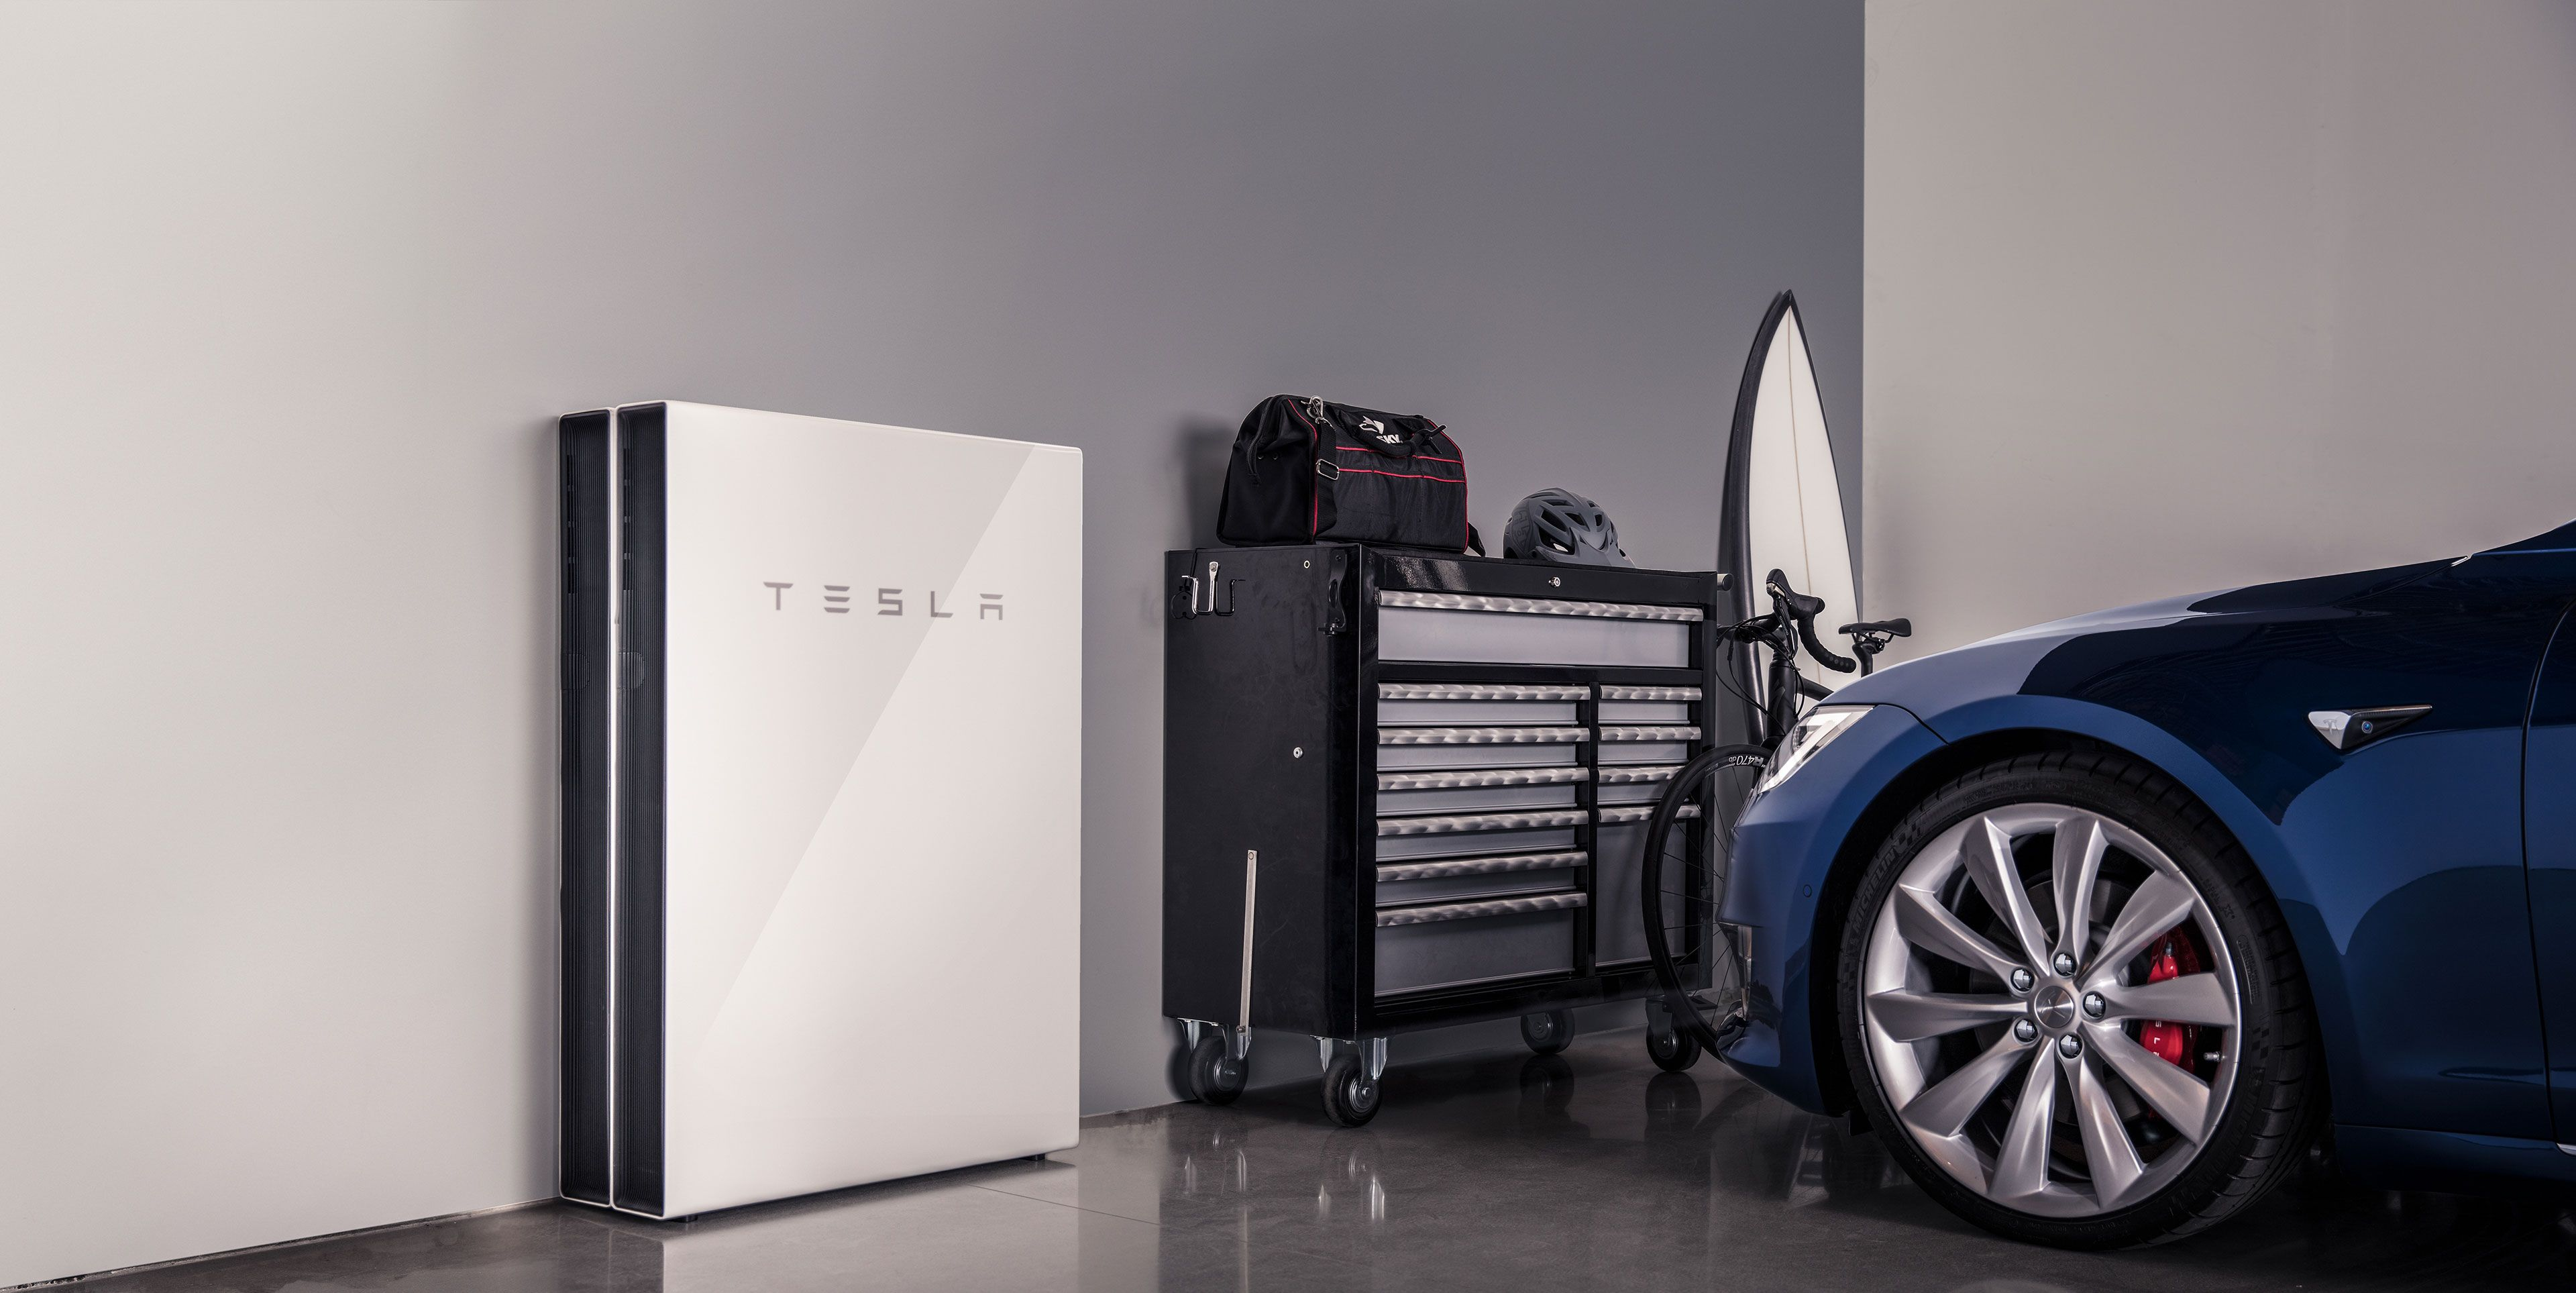 Tesla Updates Powerwall to Better Manage Vehicle Charging During Blackouts